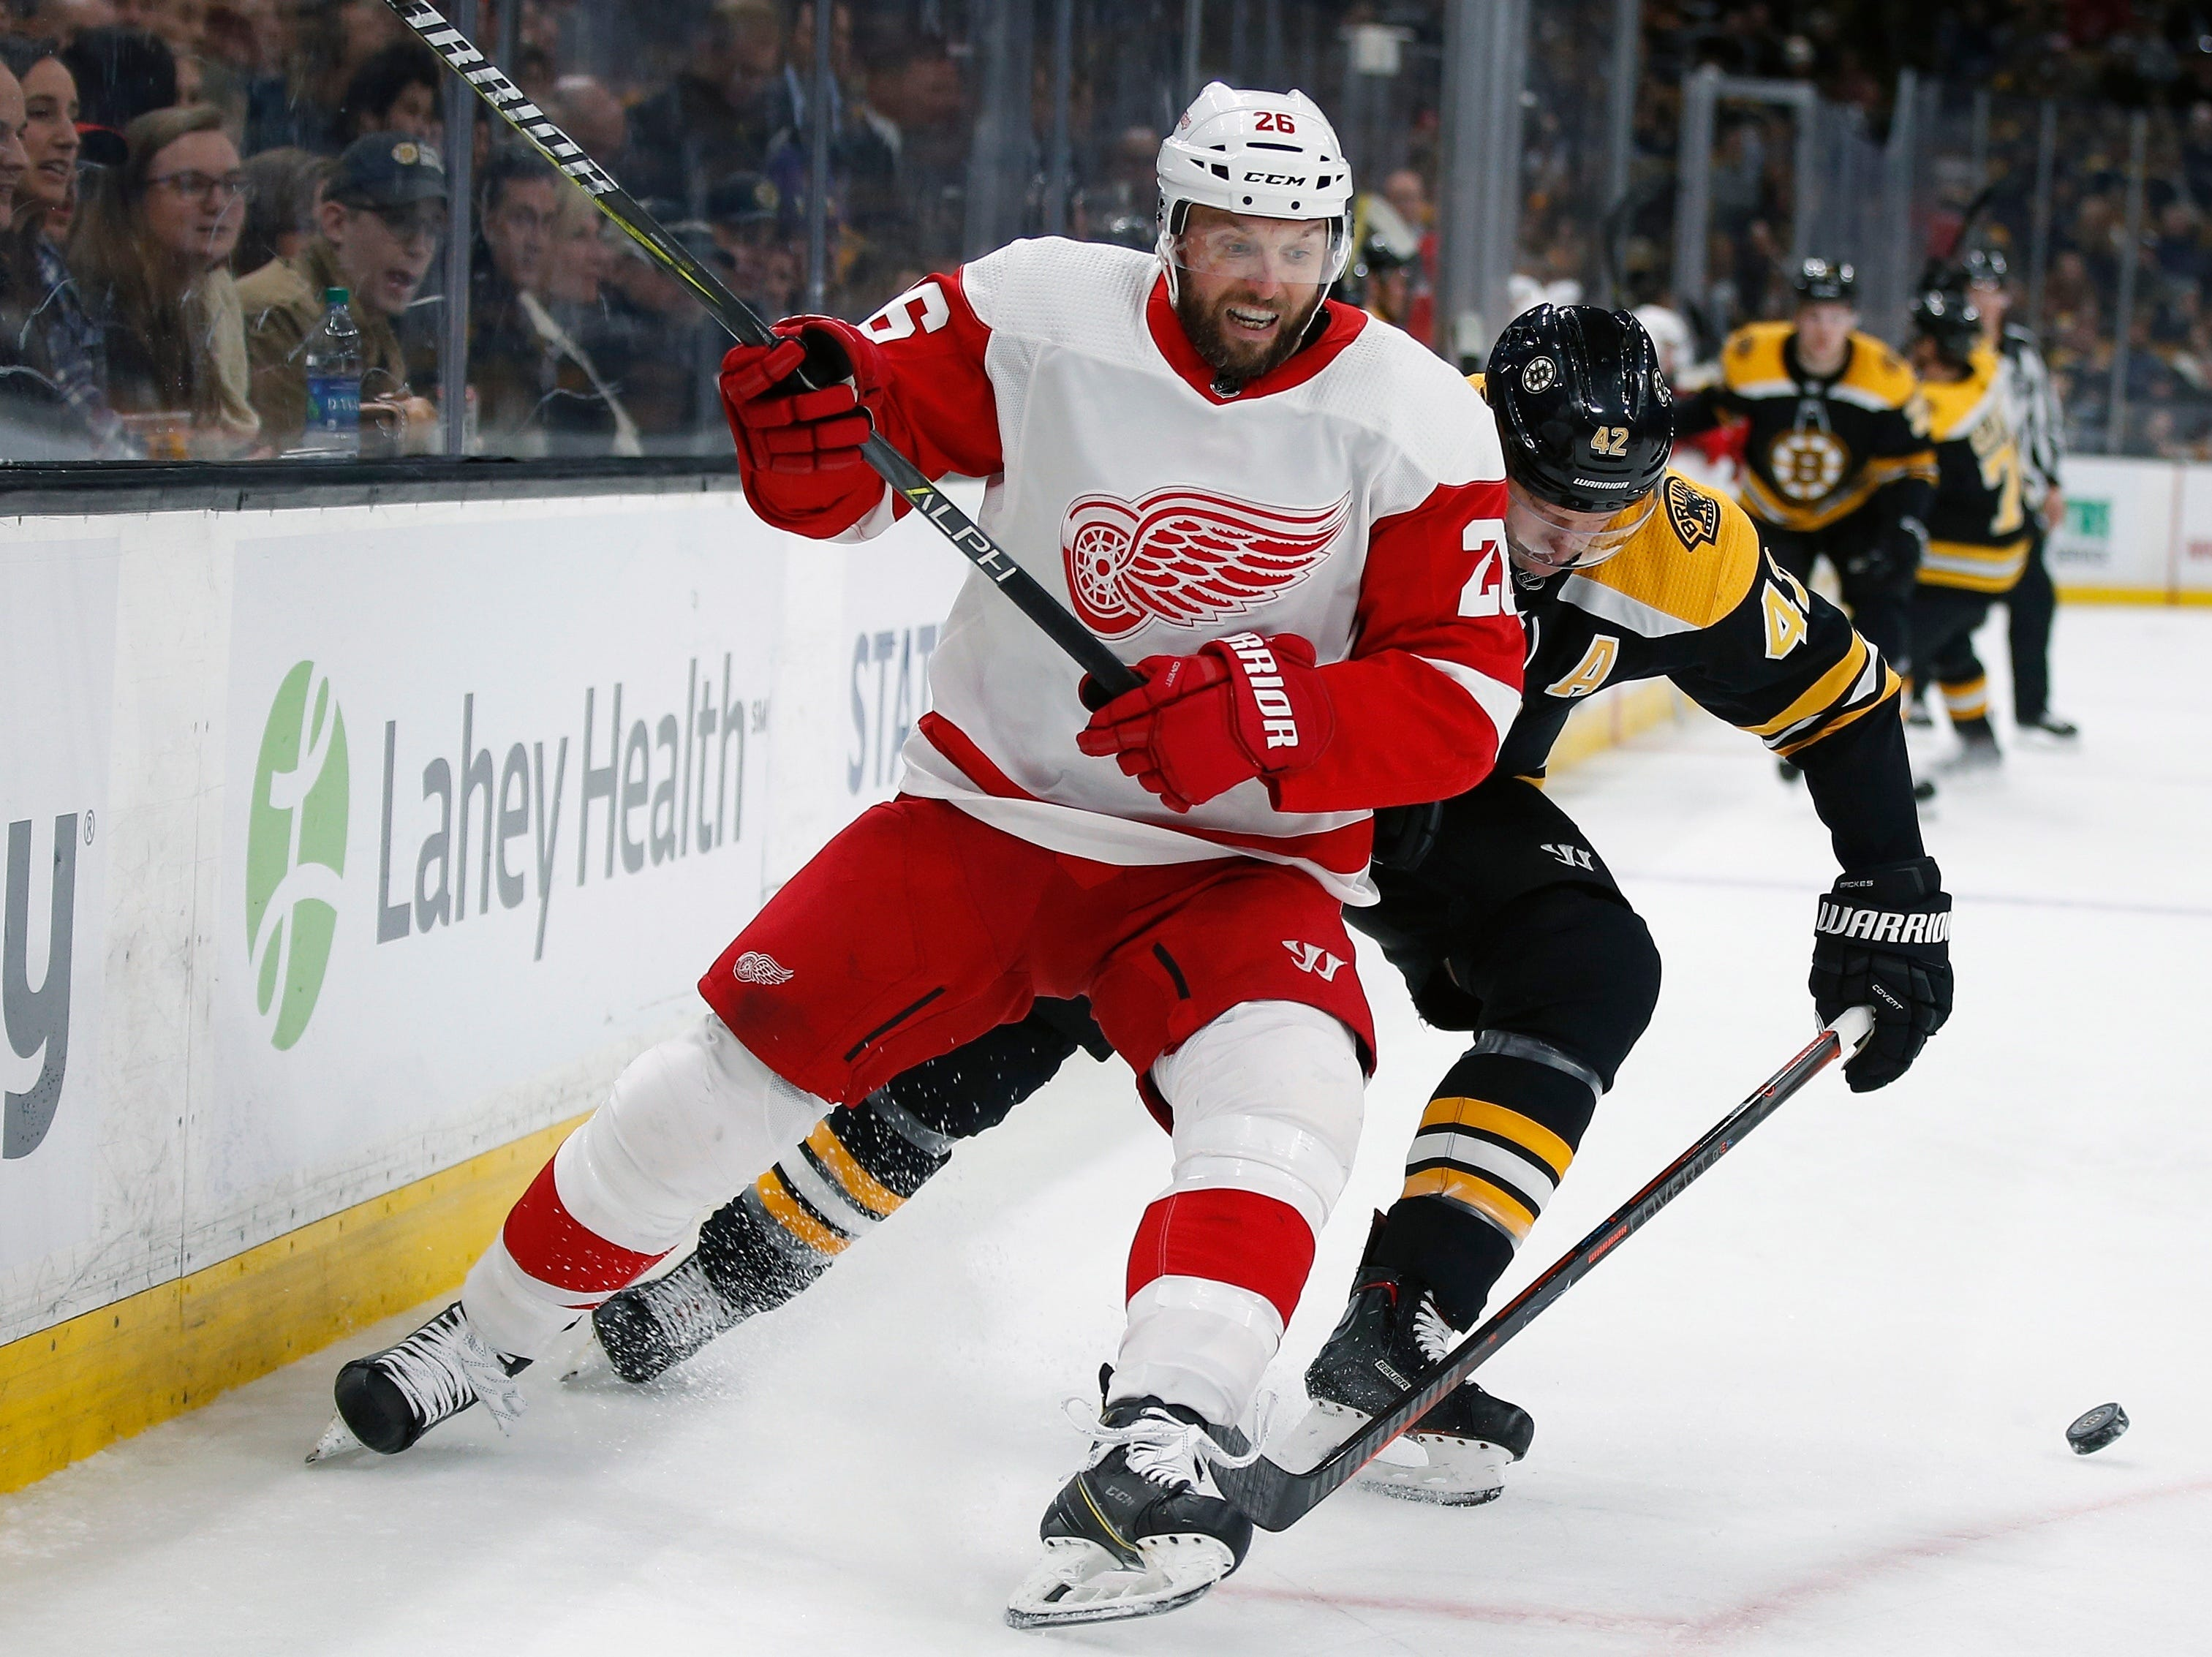 Detroit Red Wings' Thomas Vanek (26) and Boston Bruins' David Backes (42) battle for the puck during the second period.